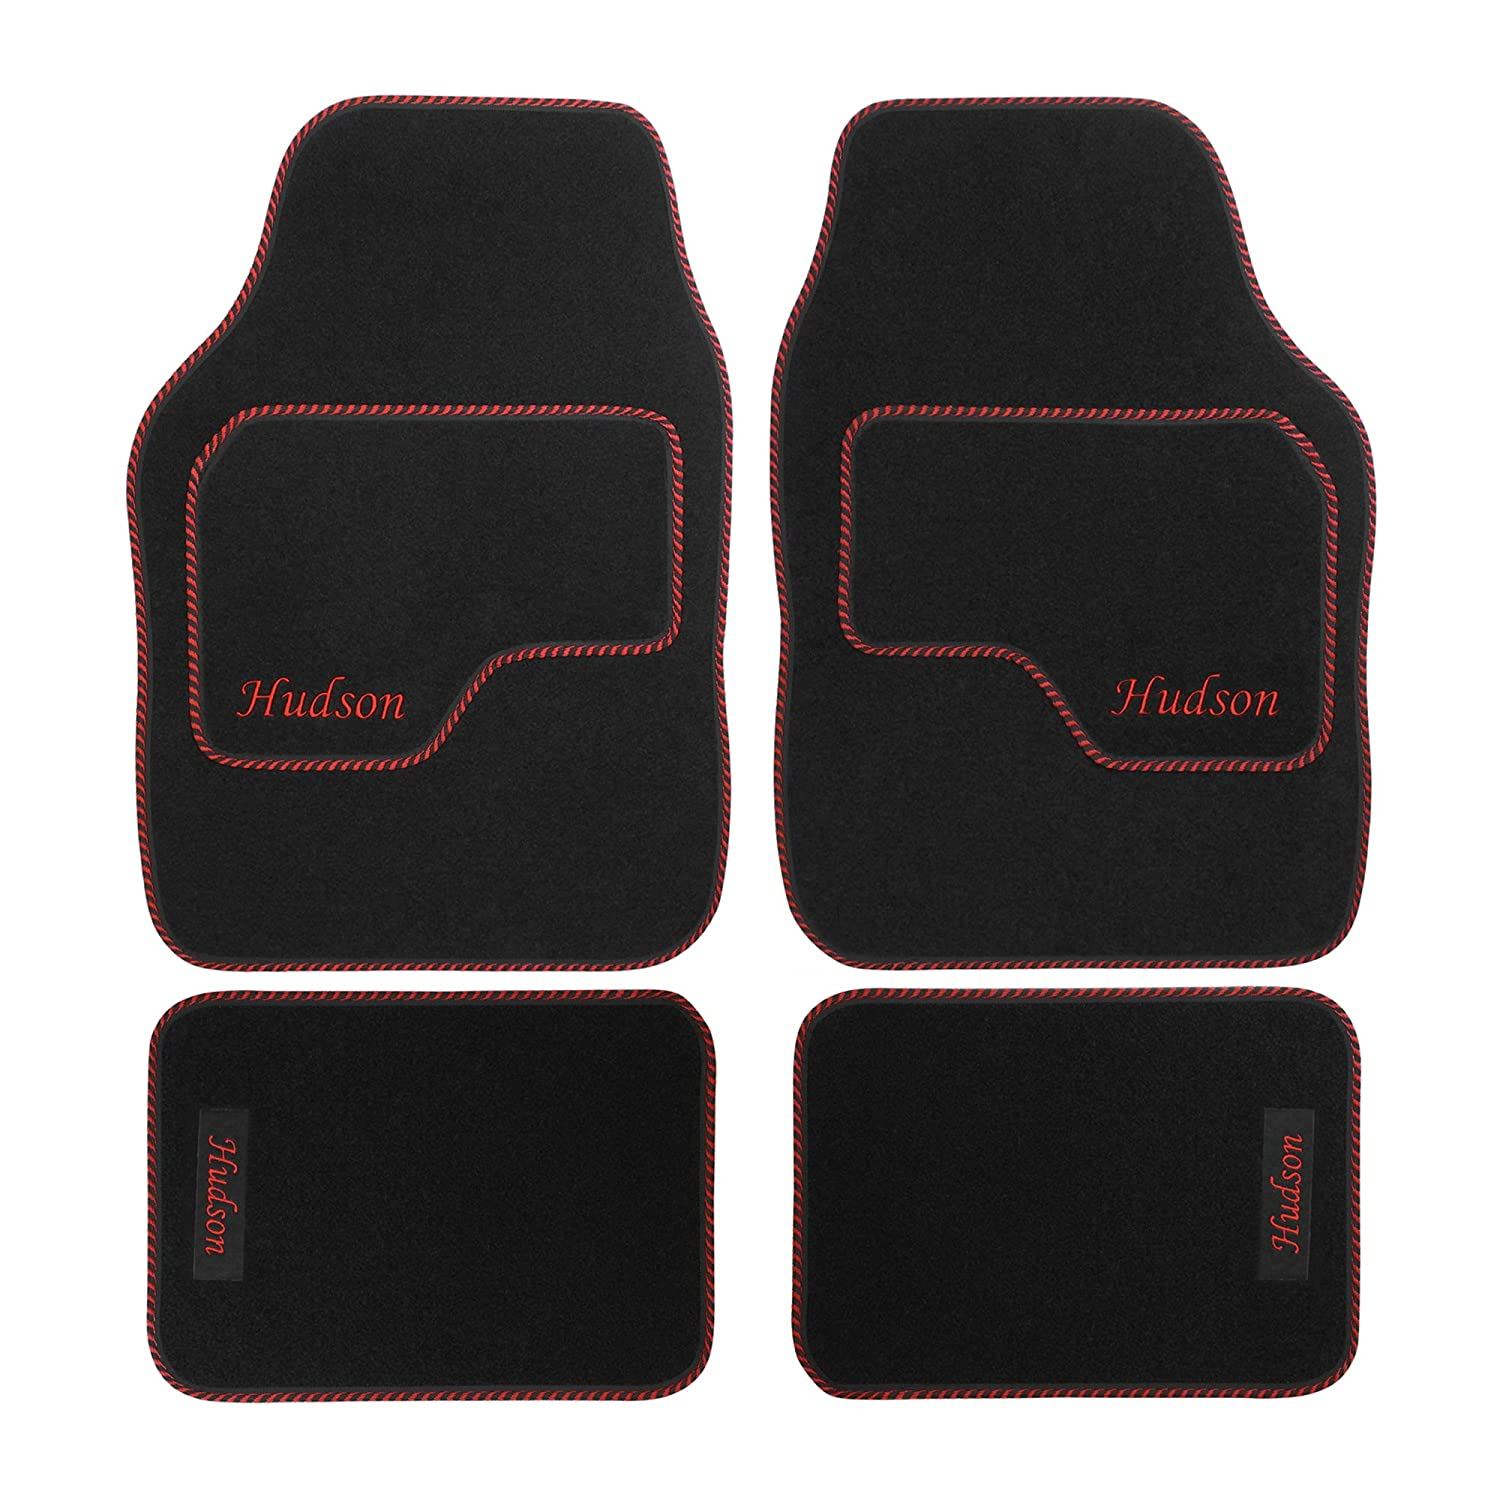 JVL Personalised Universal Black Carpet Car Mat Set with Red Embroidered Drivers Mat